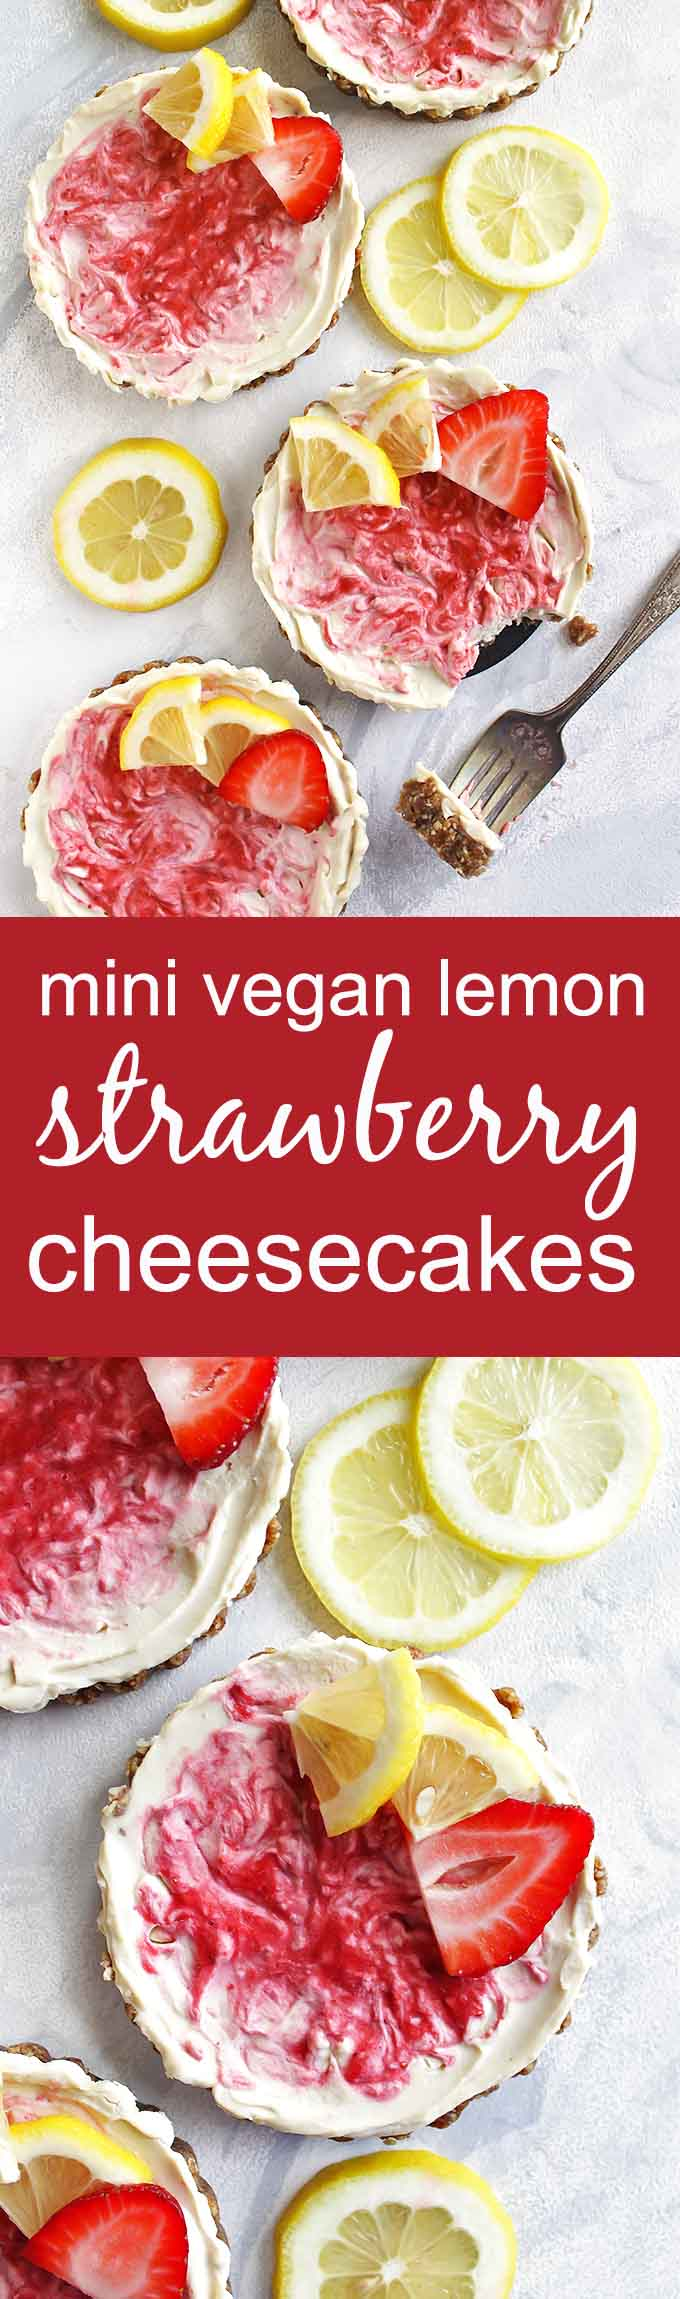 Mini Vegan Lemon Strawberry Cheesecakes - These mini cheesecakes are perfect for parties or celebrations. Or keep them on hand, in the freezer for any time you have a craving. This is a no bake recipe. The crust is a date/pecan crust and the filling is lemon-y with a strawberry swirl. Gluten Free/ Vegan/ Refined Sugar Free/ Dairy Free | robustrecipes.com